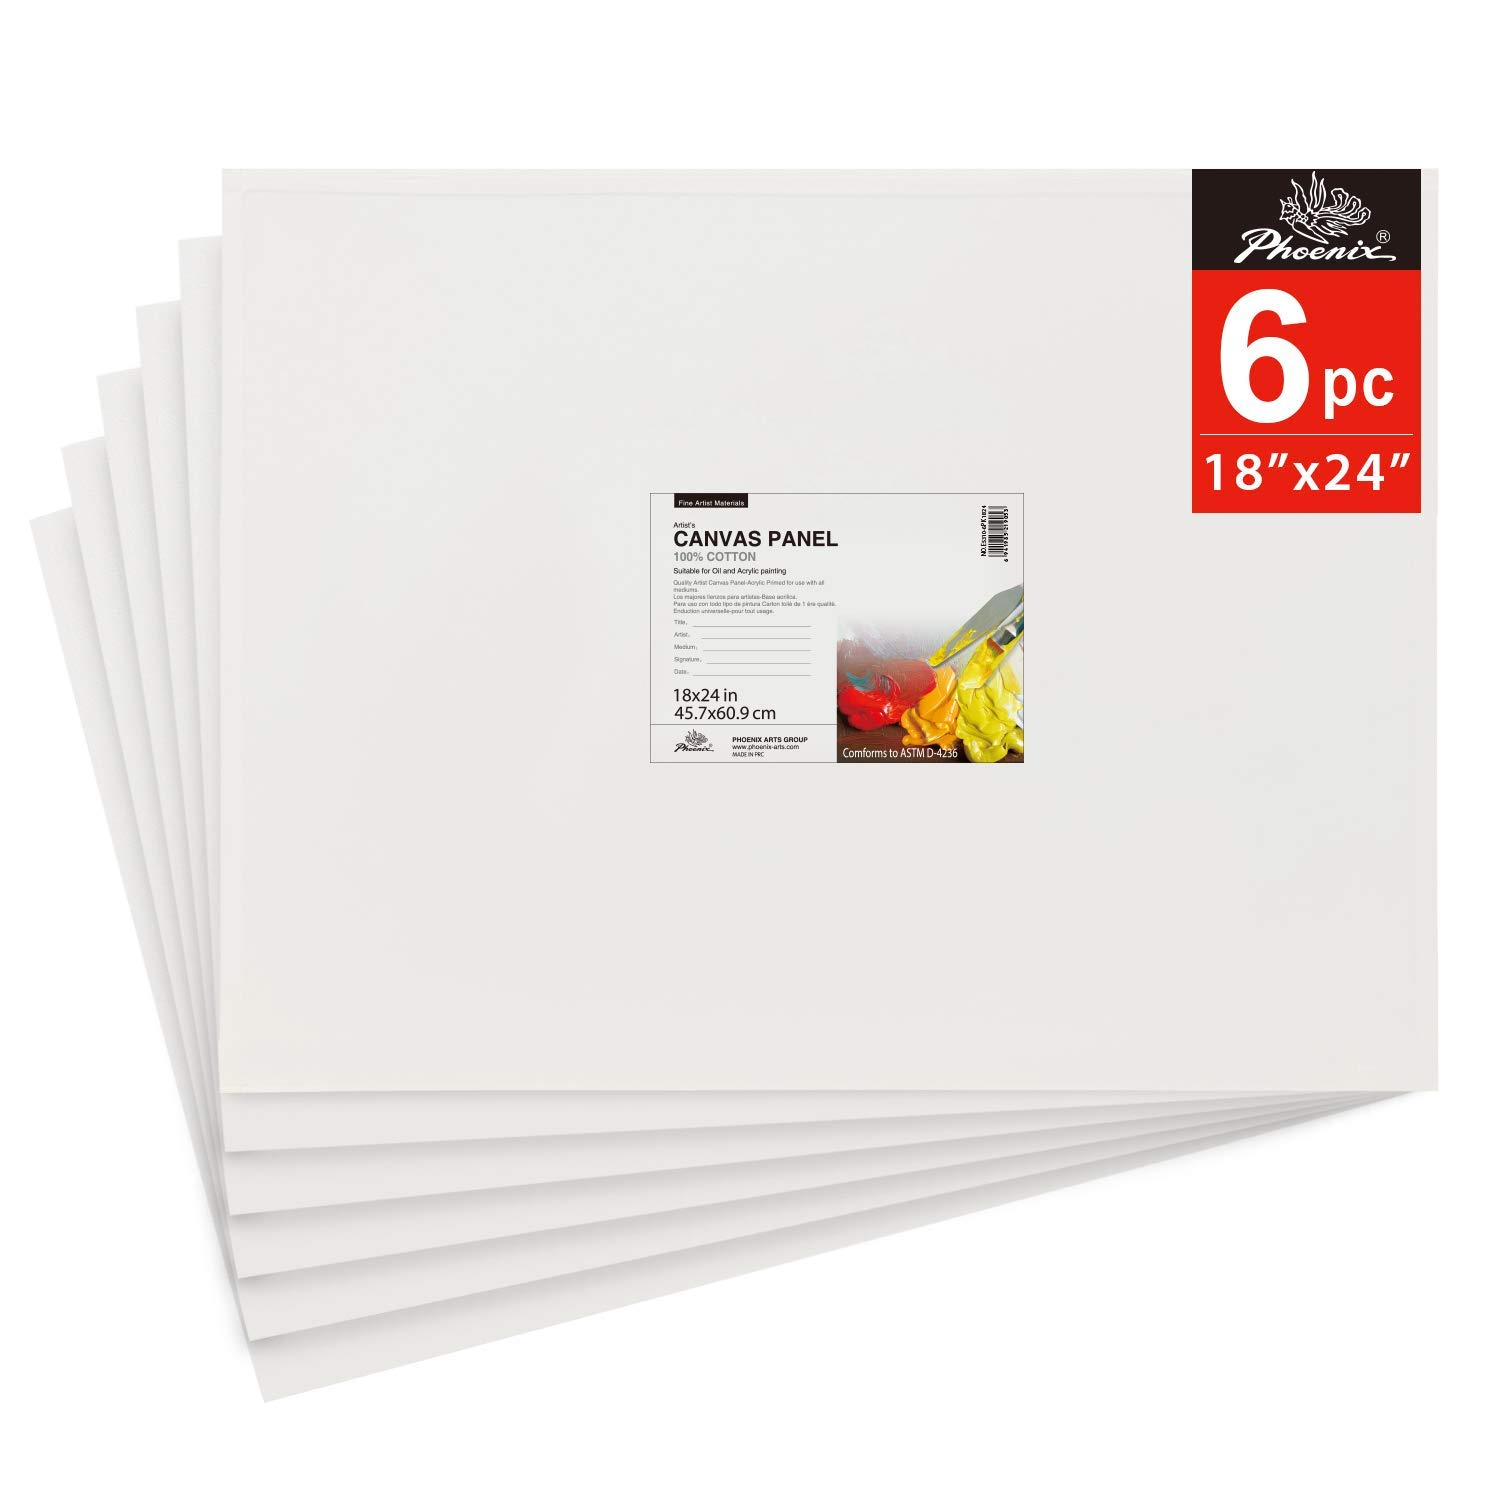 PHOENIX Painting Canvas Panel Boards - 18x24 Inch / 6 Pack - 1/7 Inch Deep Super Value Pack for Oil & Acrylic Paint by PHOENIX